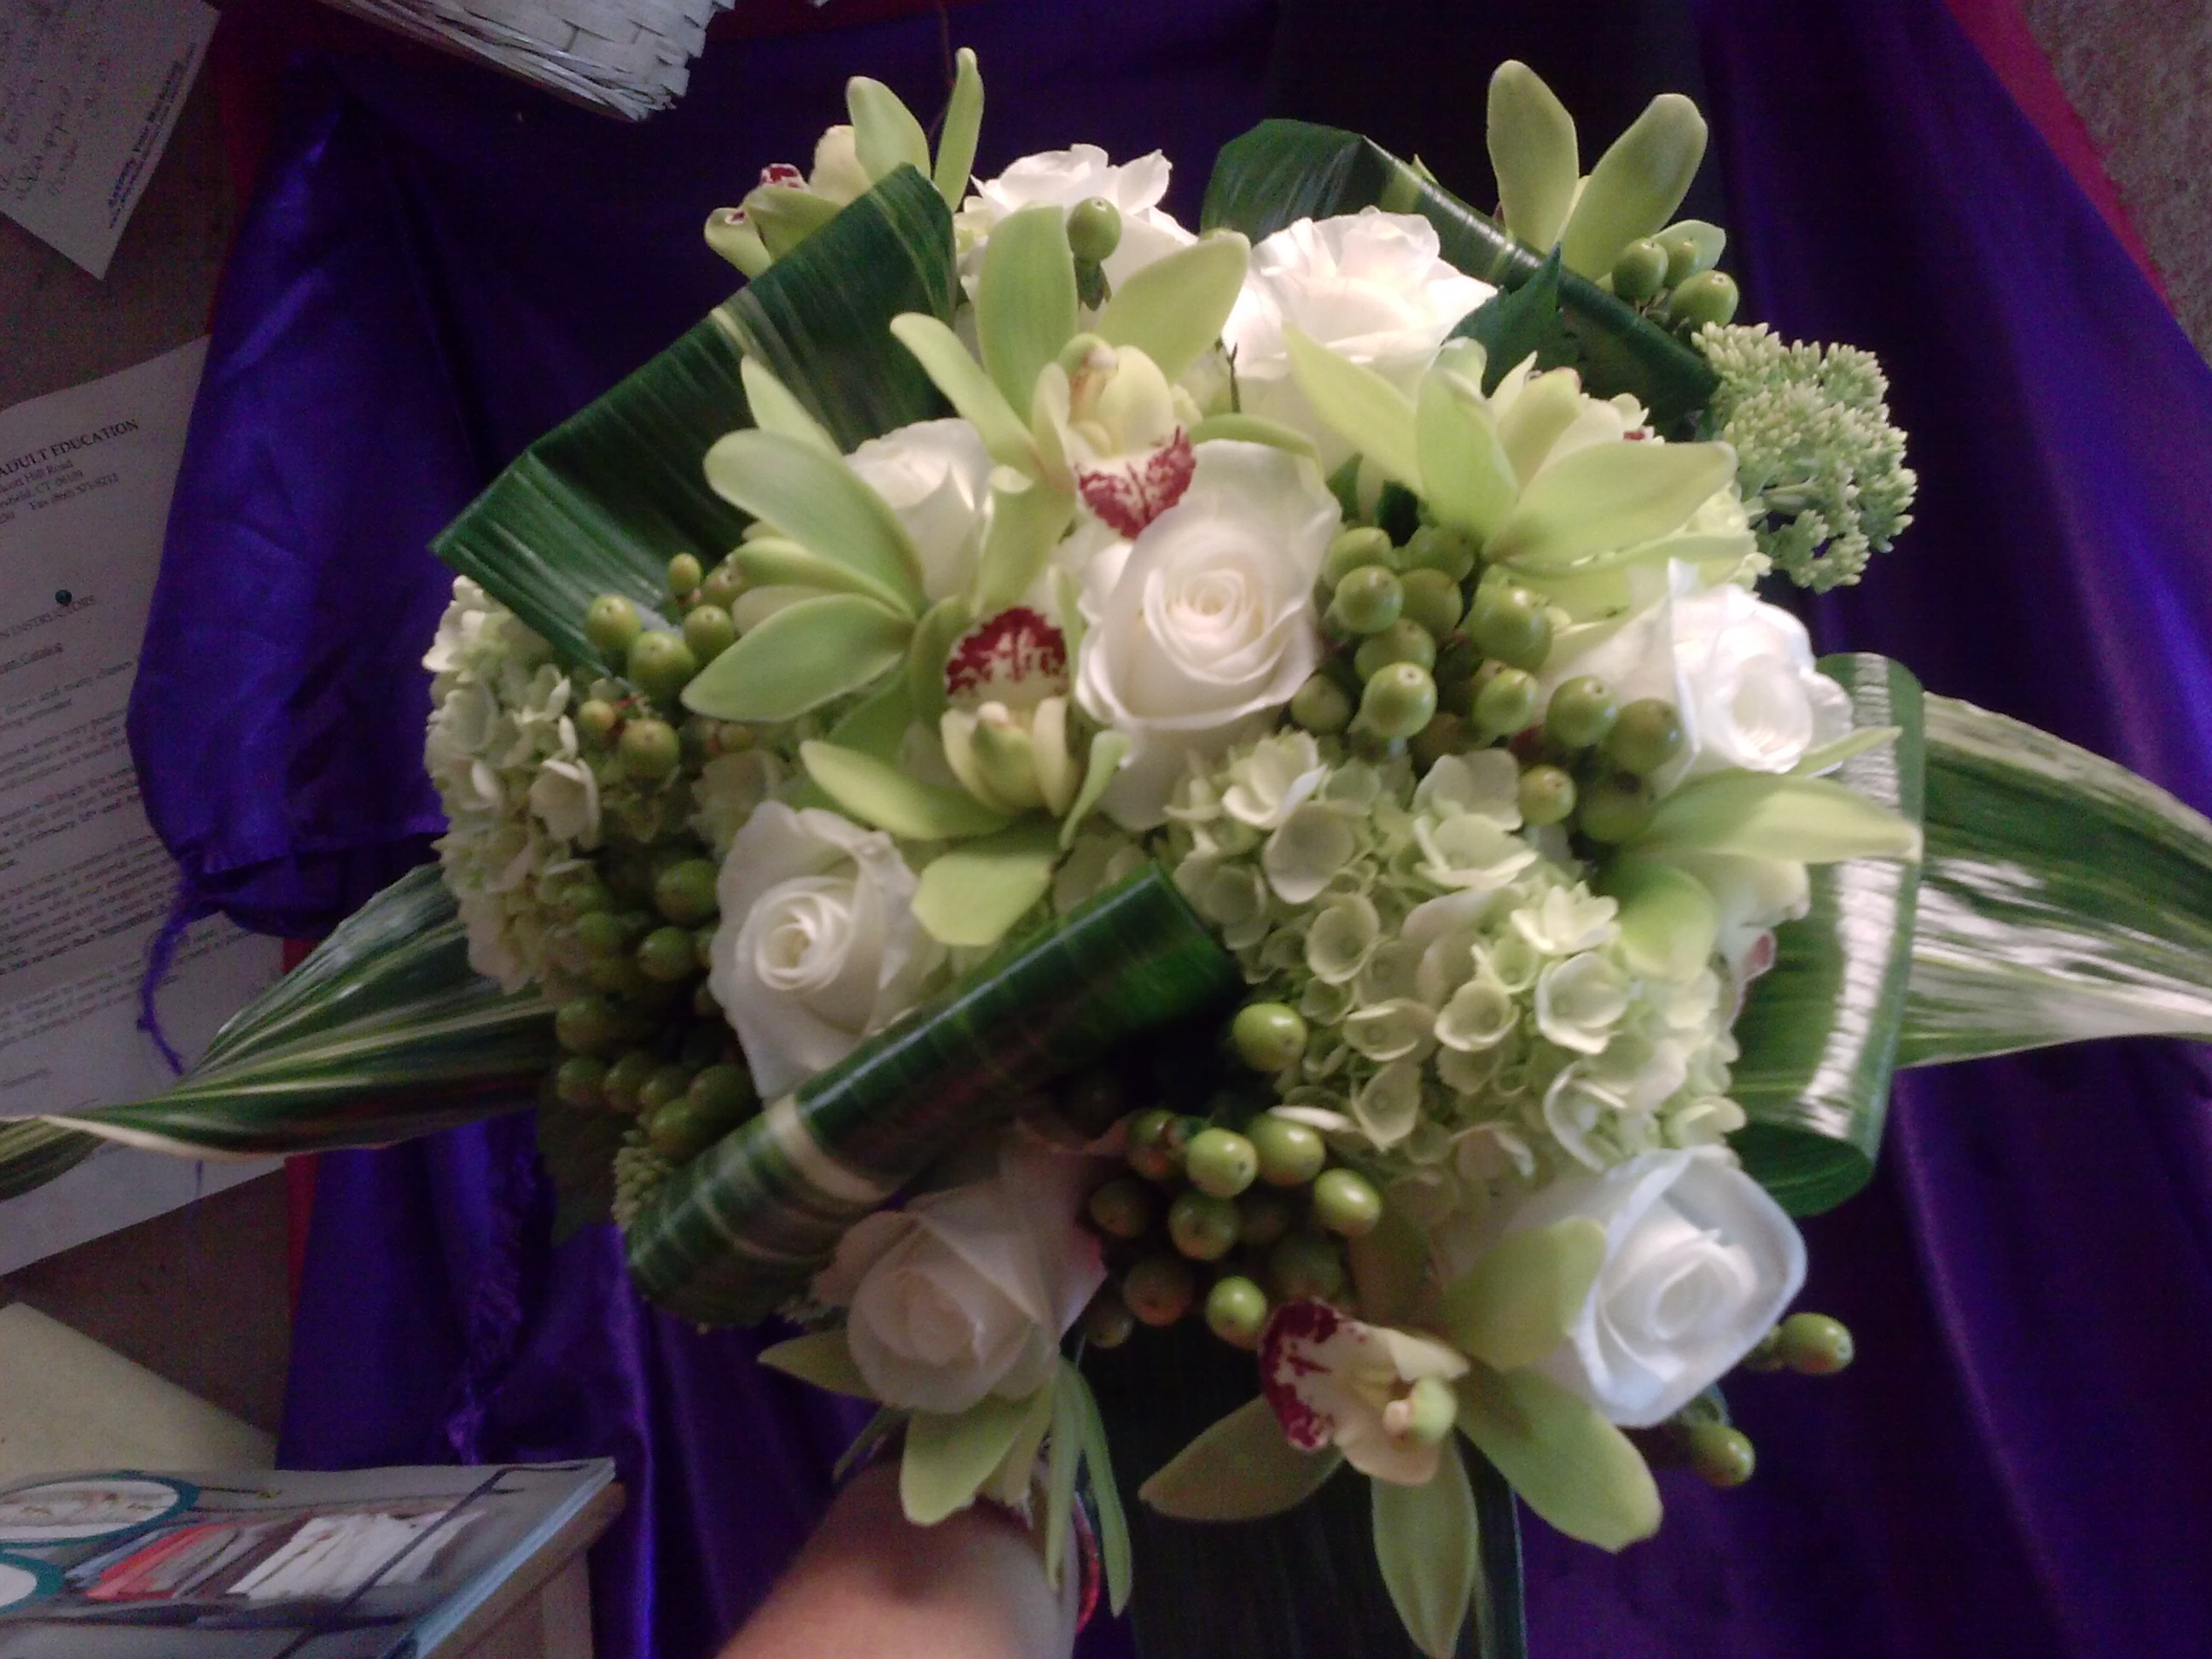 Green, Orchids, Hydrangeas with whit